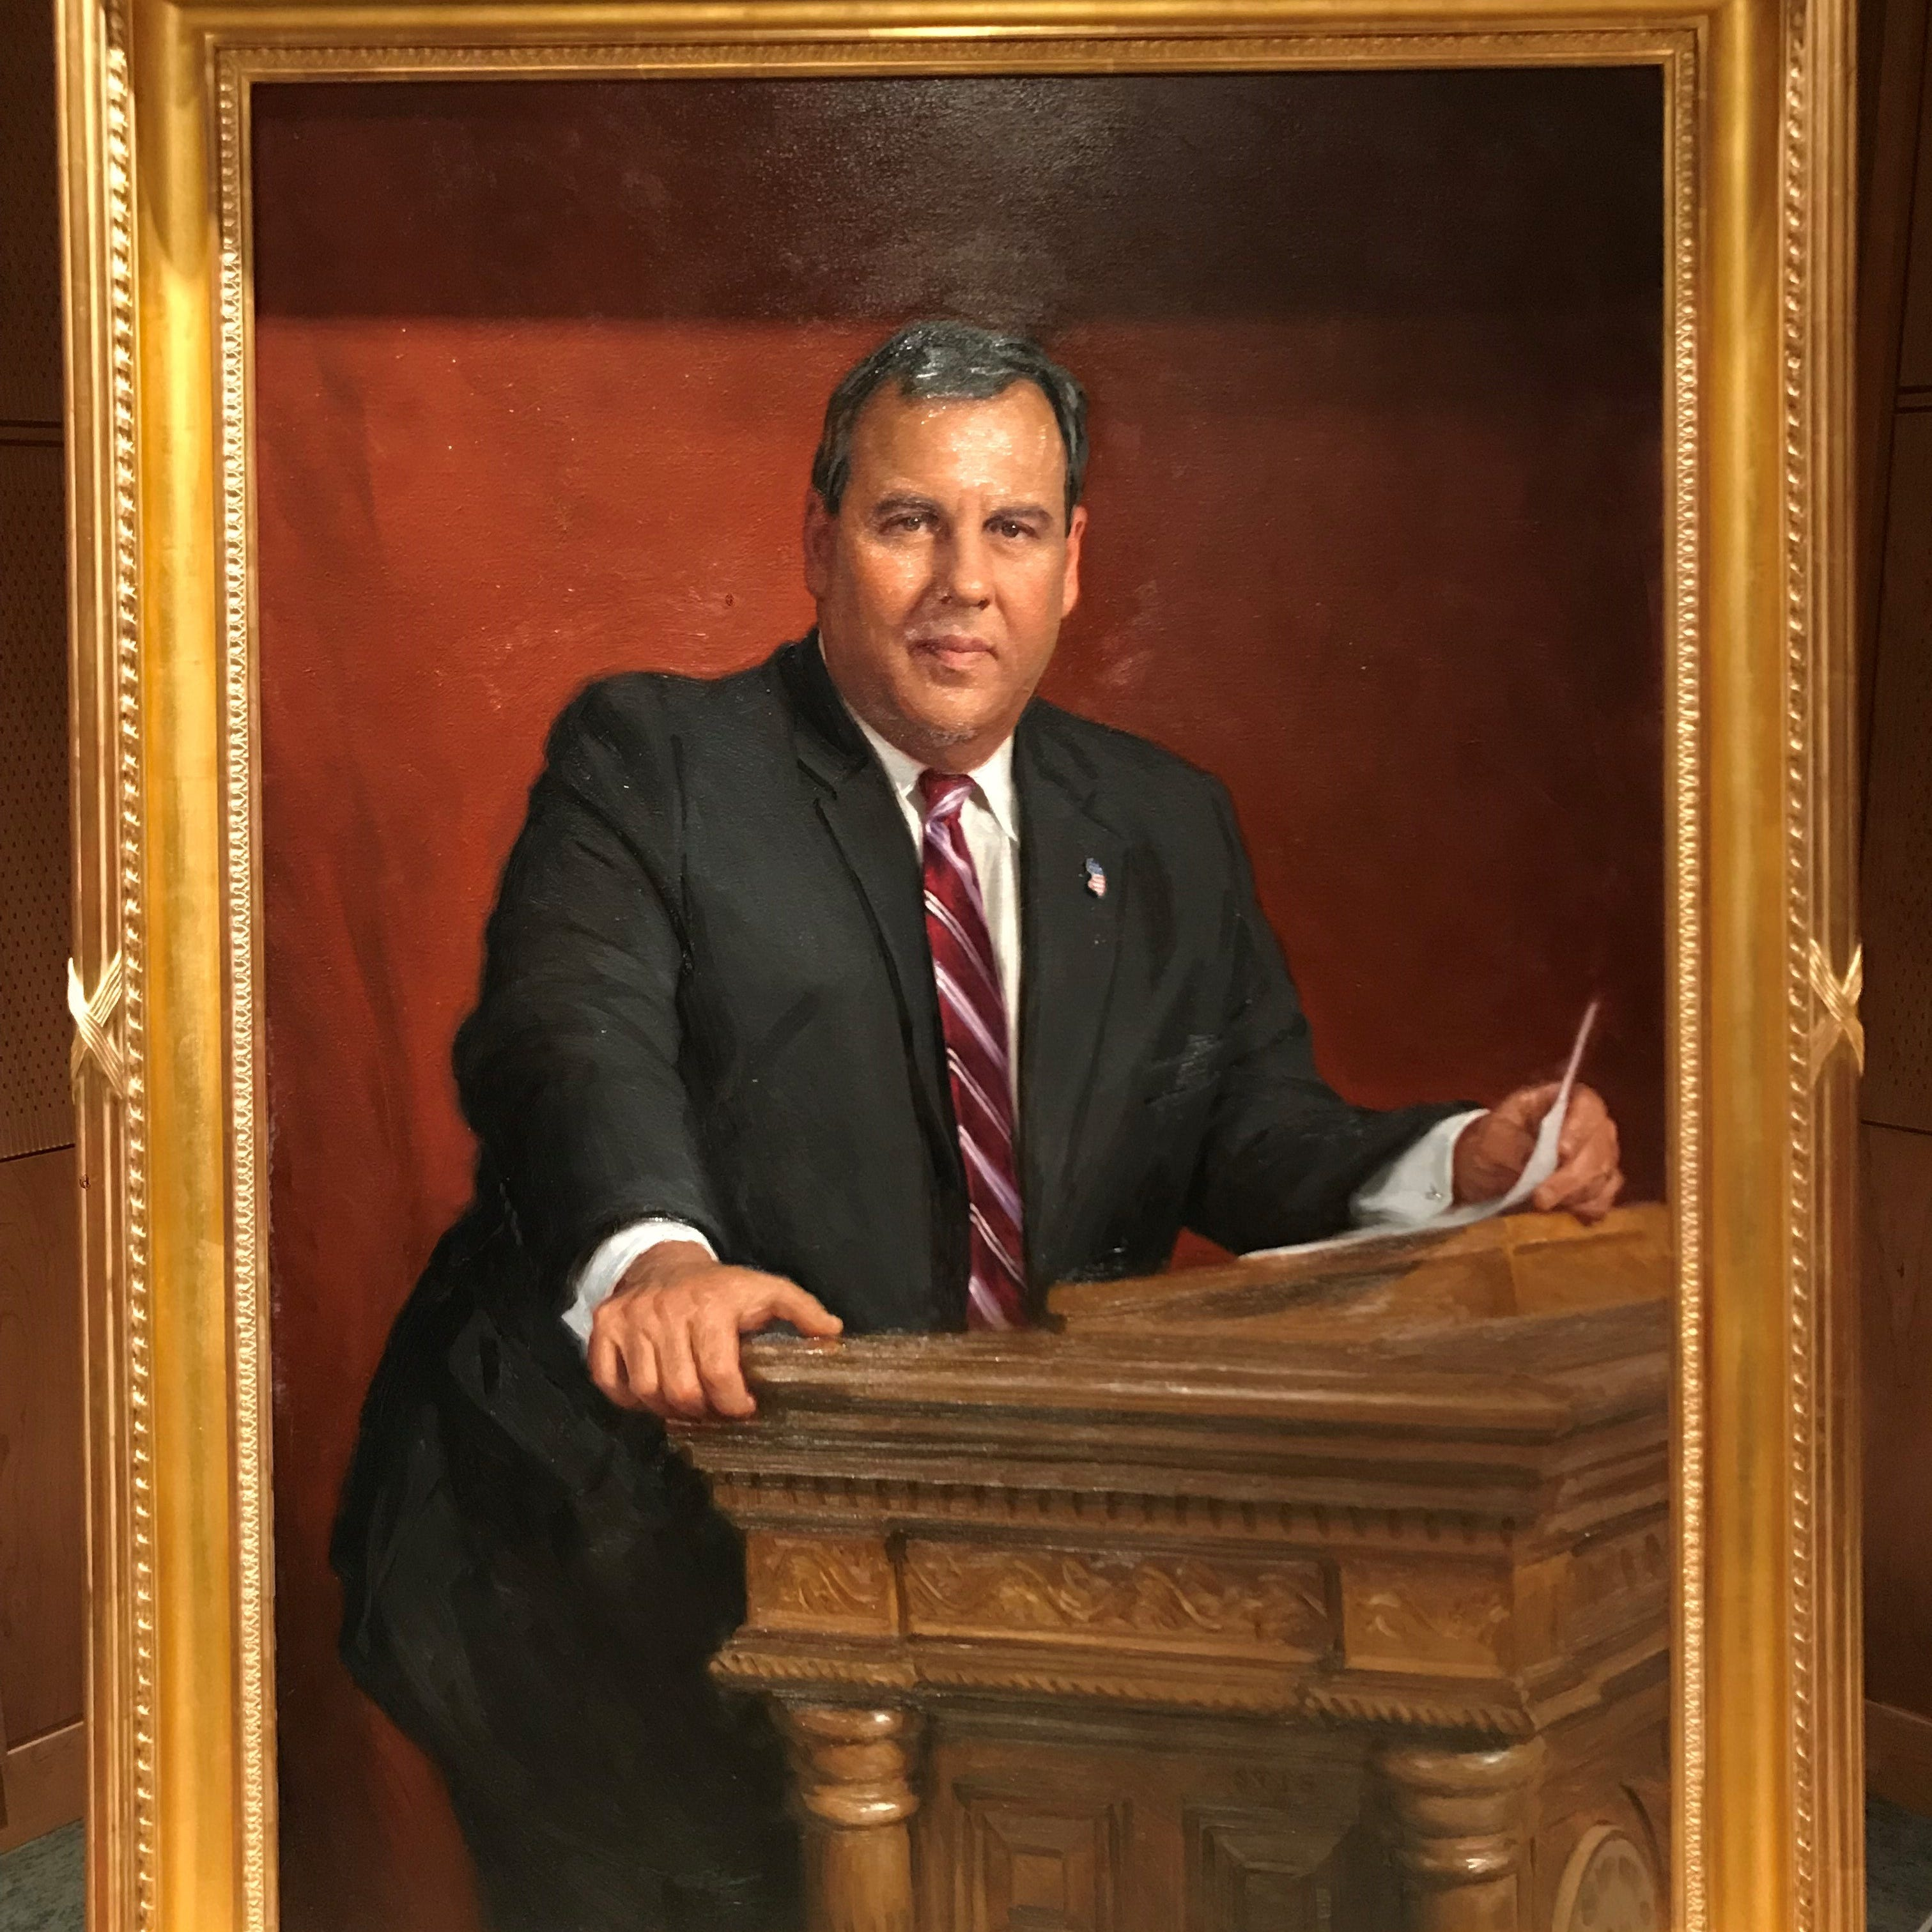 Chris Christie's official NJ portrait, most expensive ever, depicts man behind the lectern